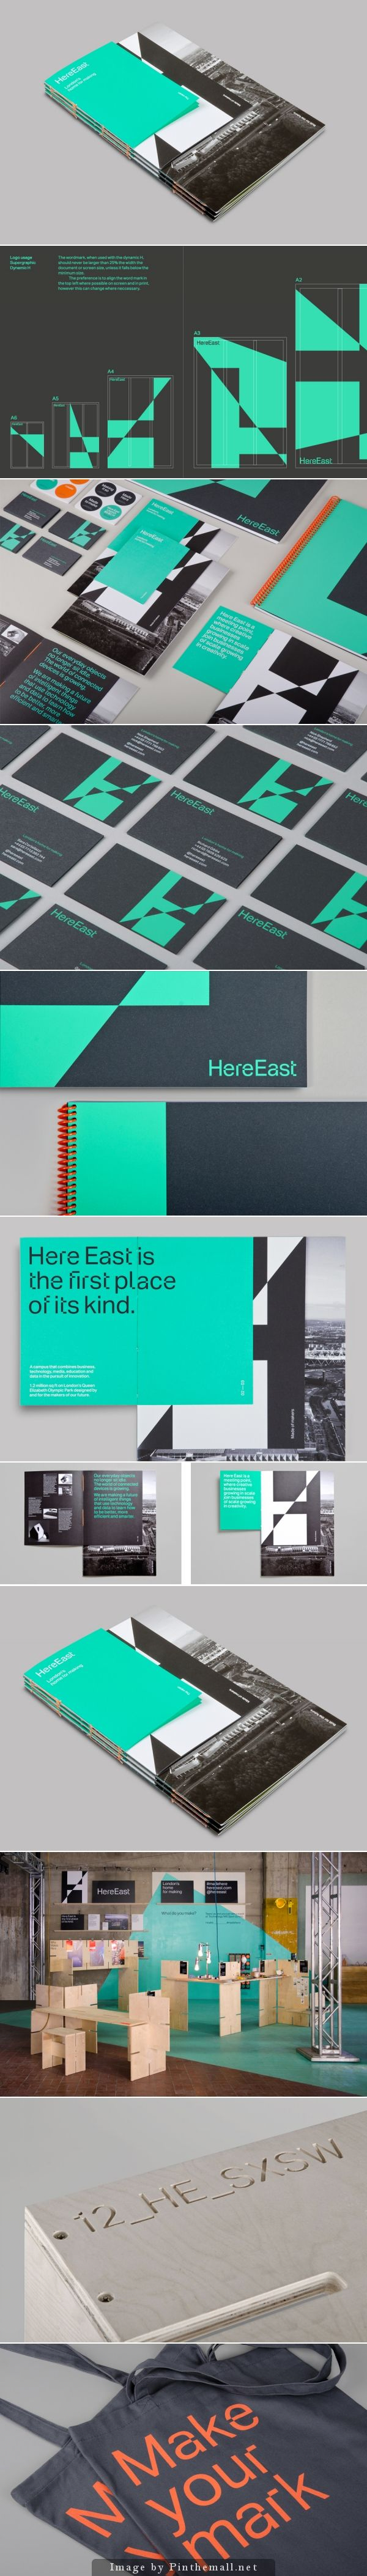 Here East designed by dn&co.